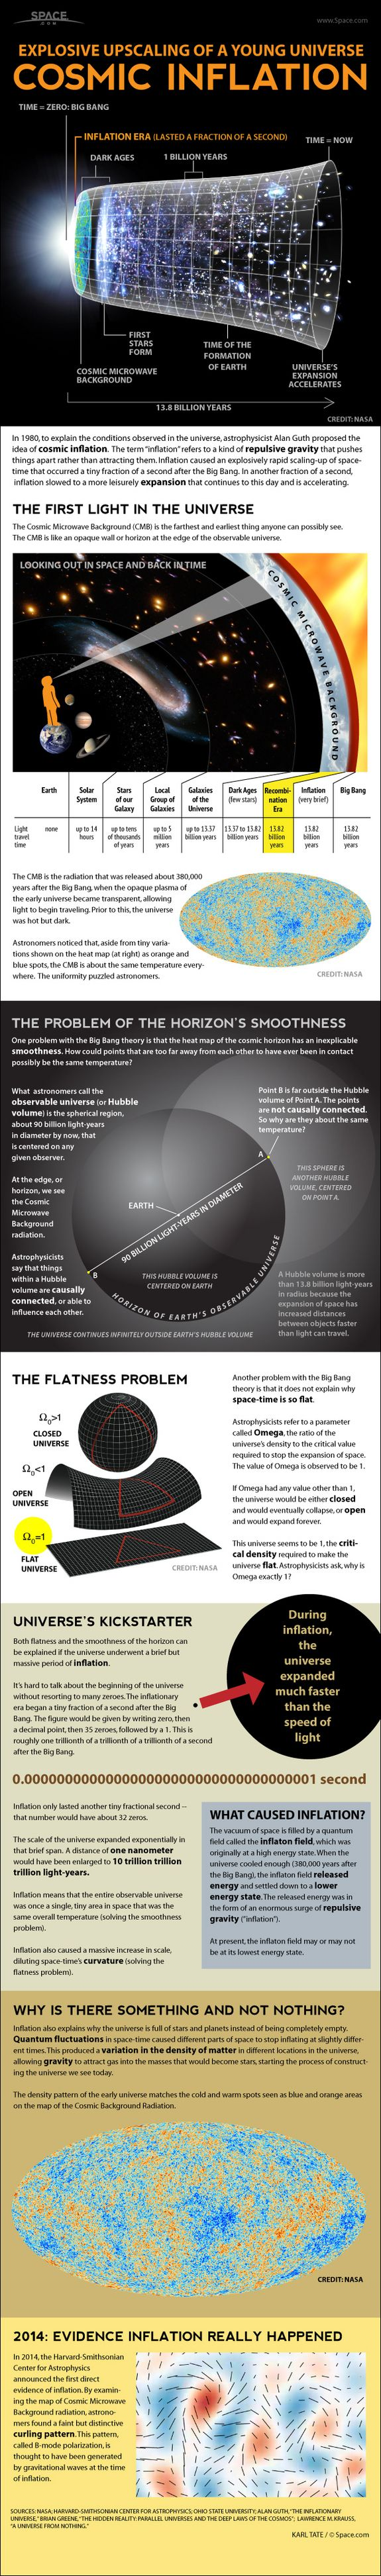 Cosmic Inflation: How It Gave the Universe the Ultimate Kickstart (Infographic)